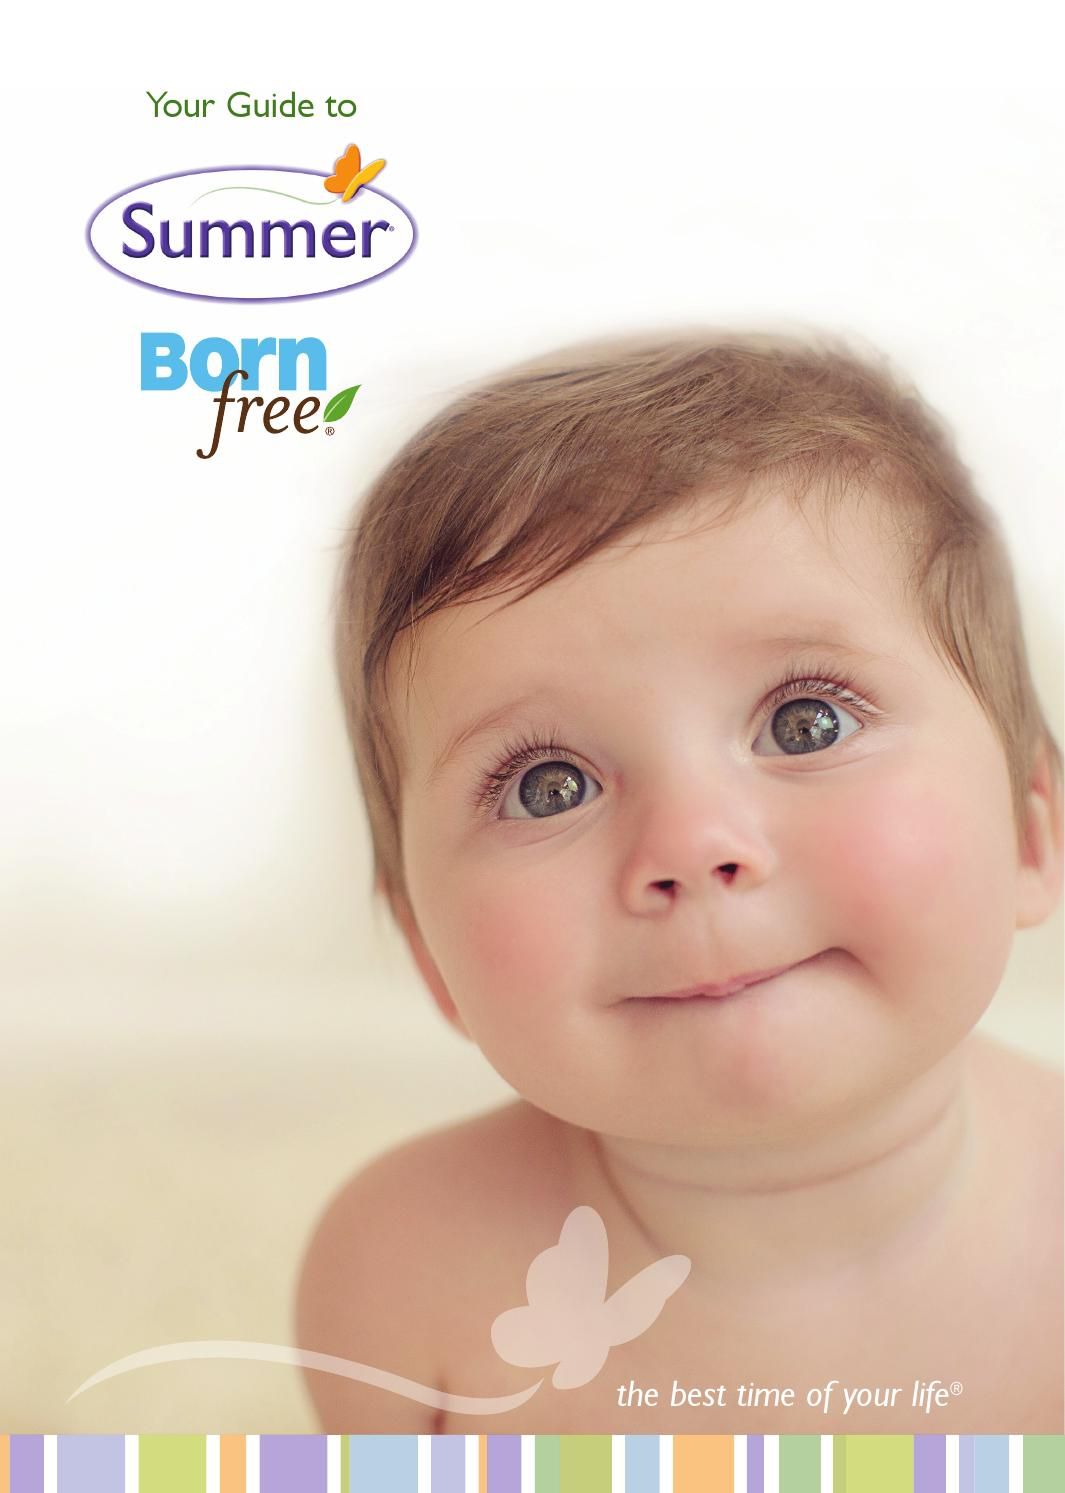 Summer infant zomer catalogus 8.14 by wietse lemstra   issuu